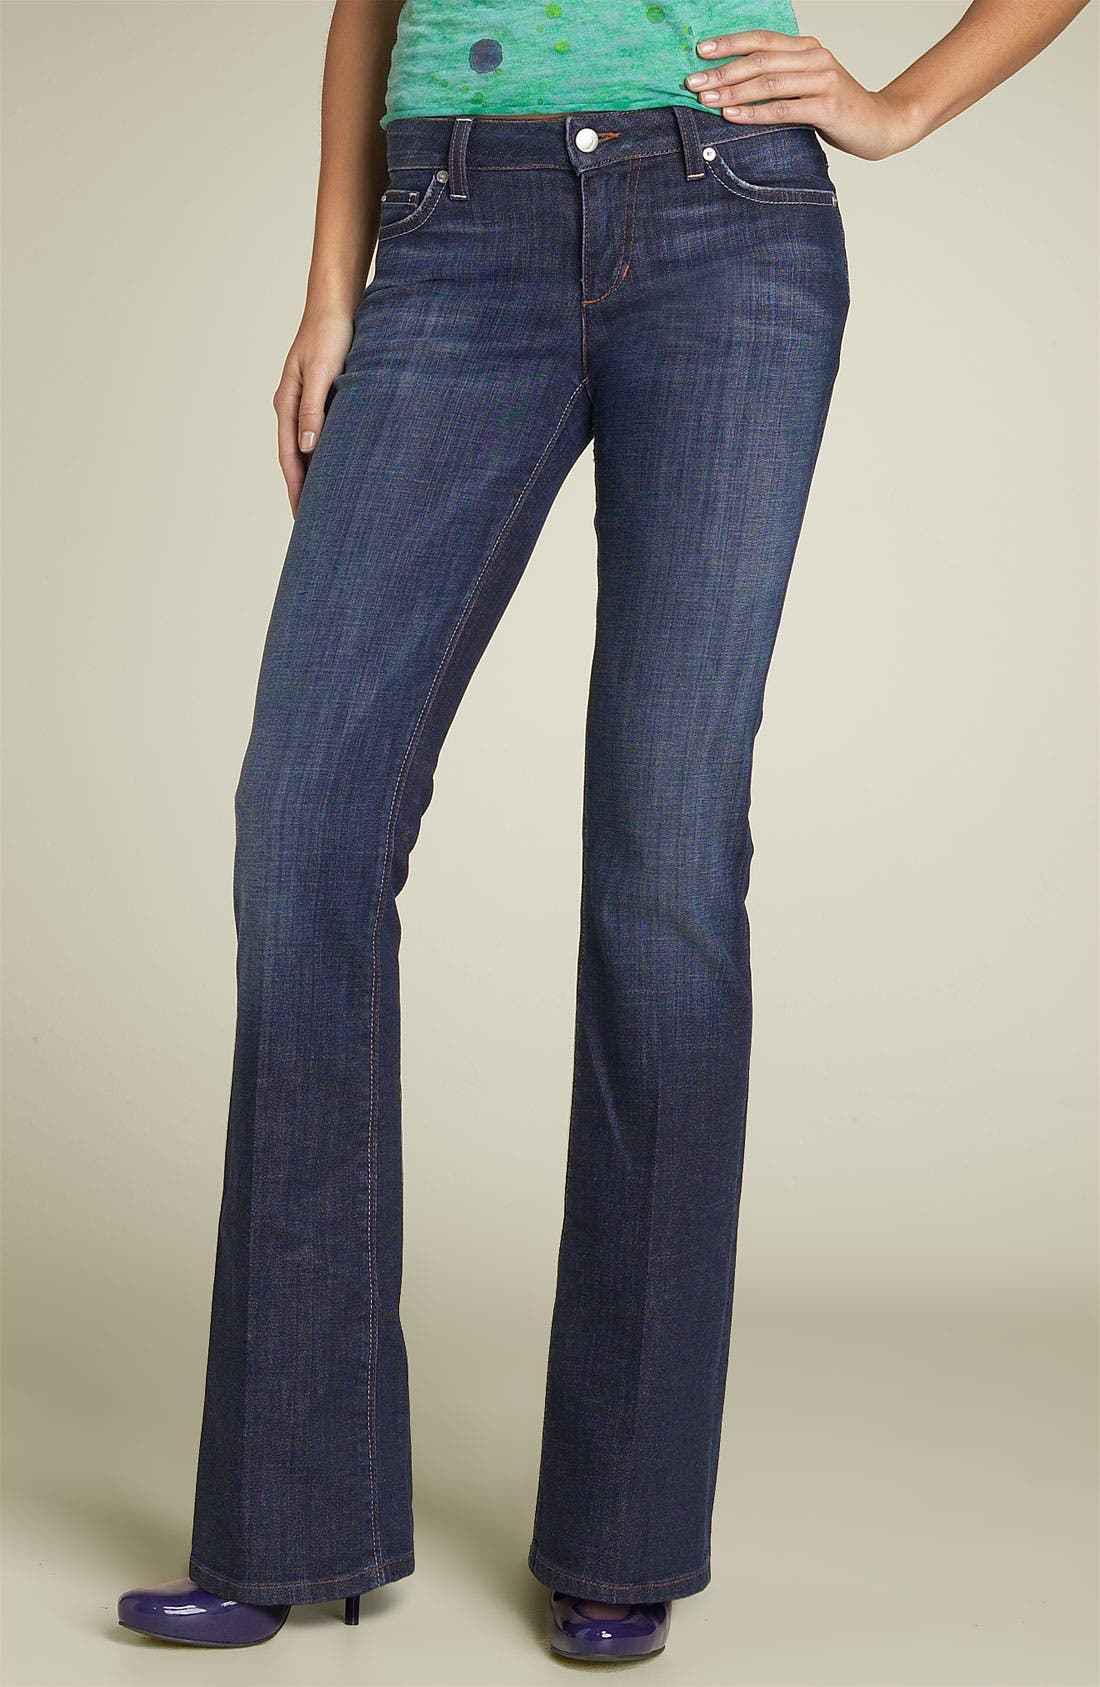 Alternate Image 2  - Joe's Jeans 'Honey' Curvy Fit Stretch Jeans (Ryder Wash)